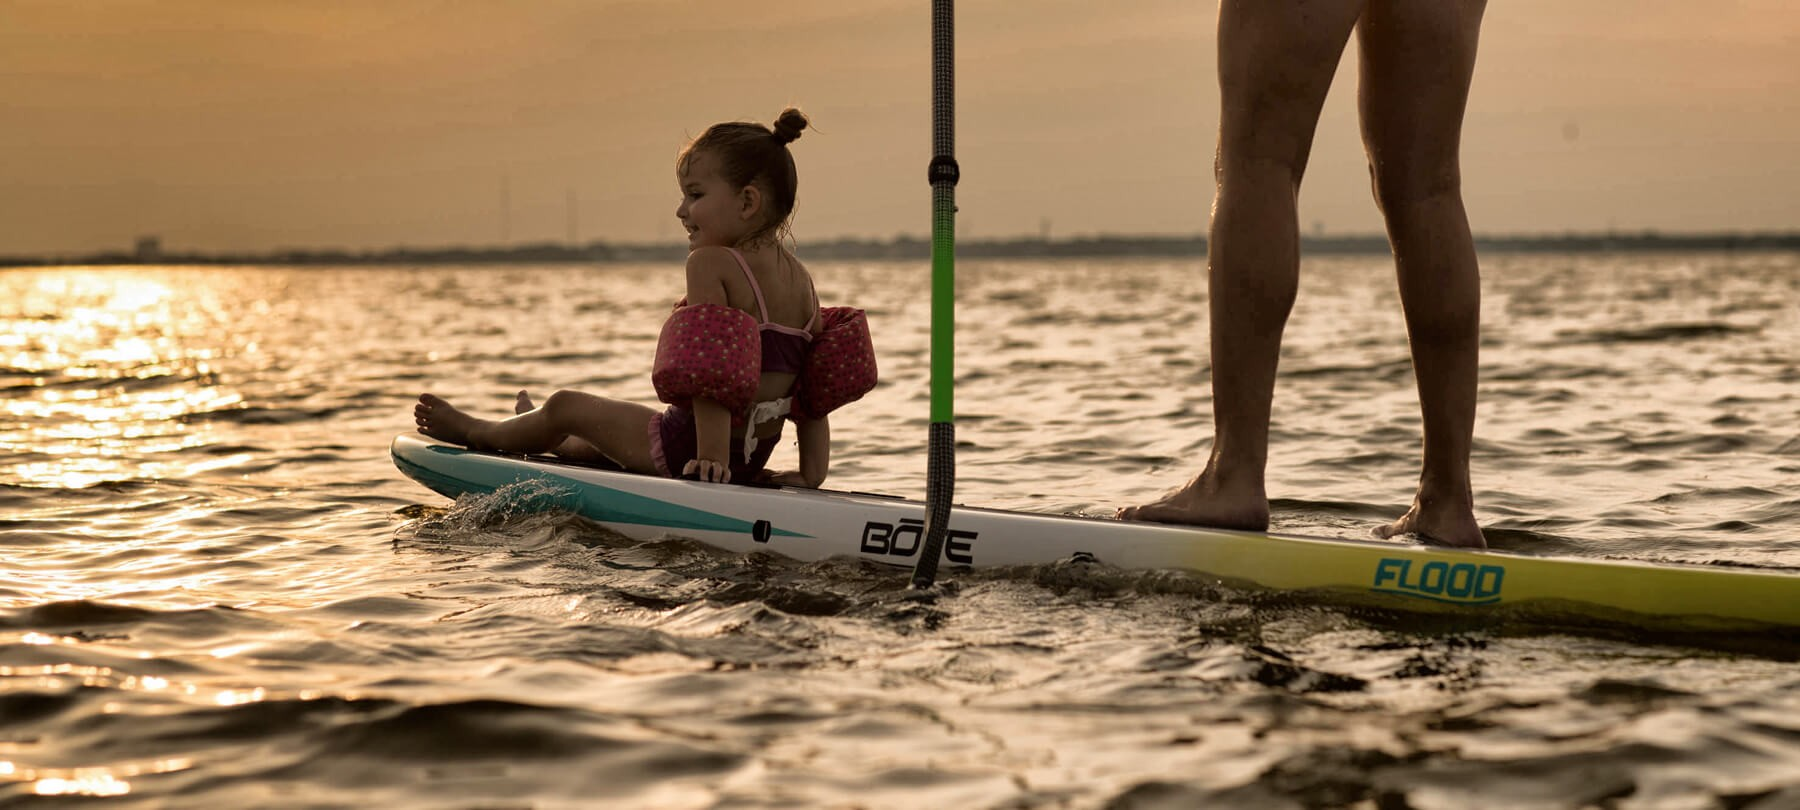 Bote Flood Paddleboard - Photo 2